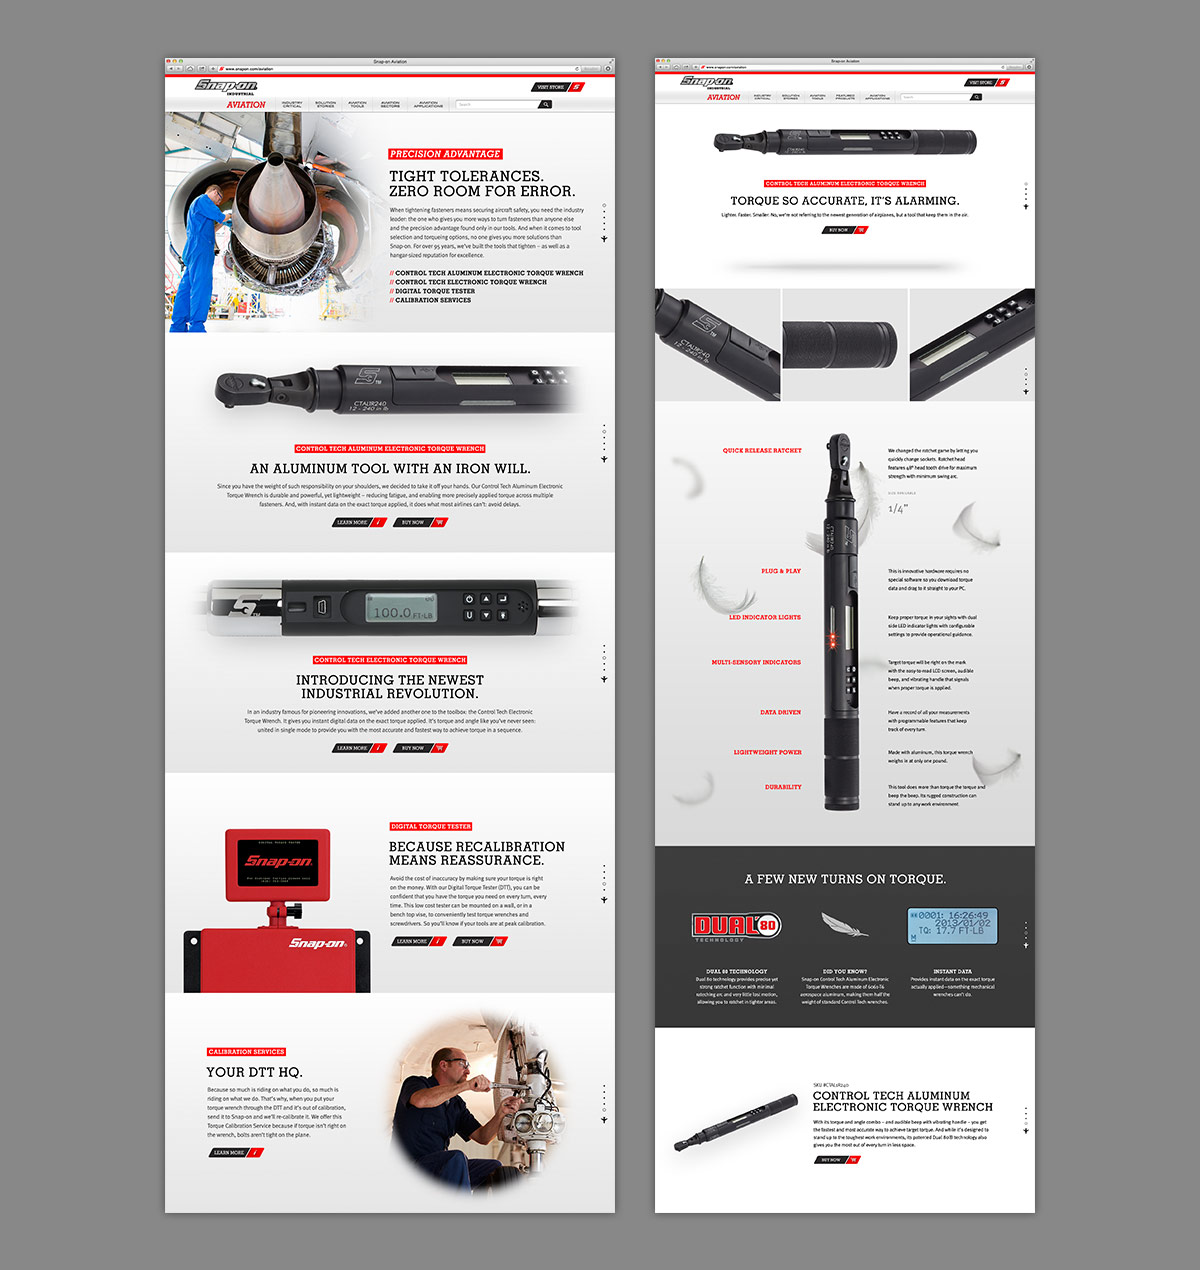 Snap-on-Pages-3.jpg